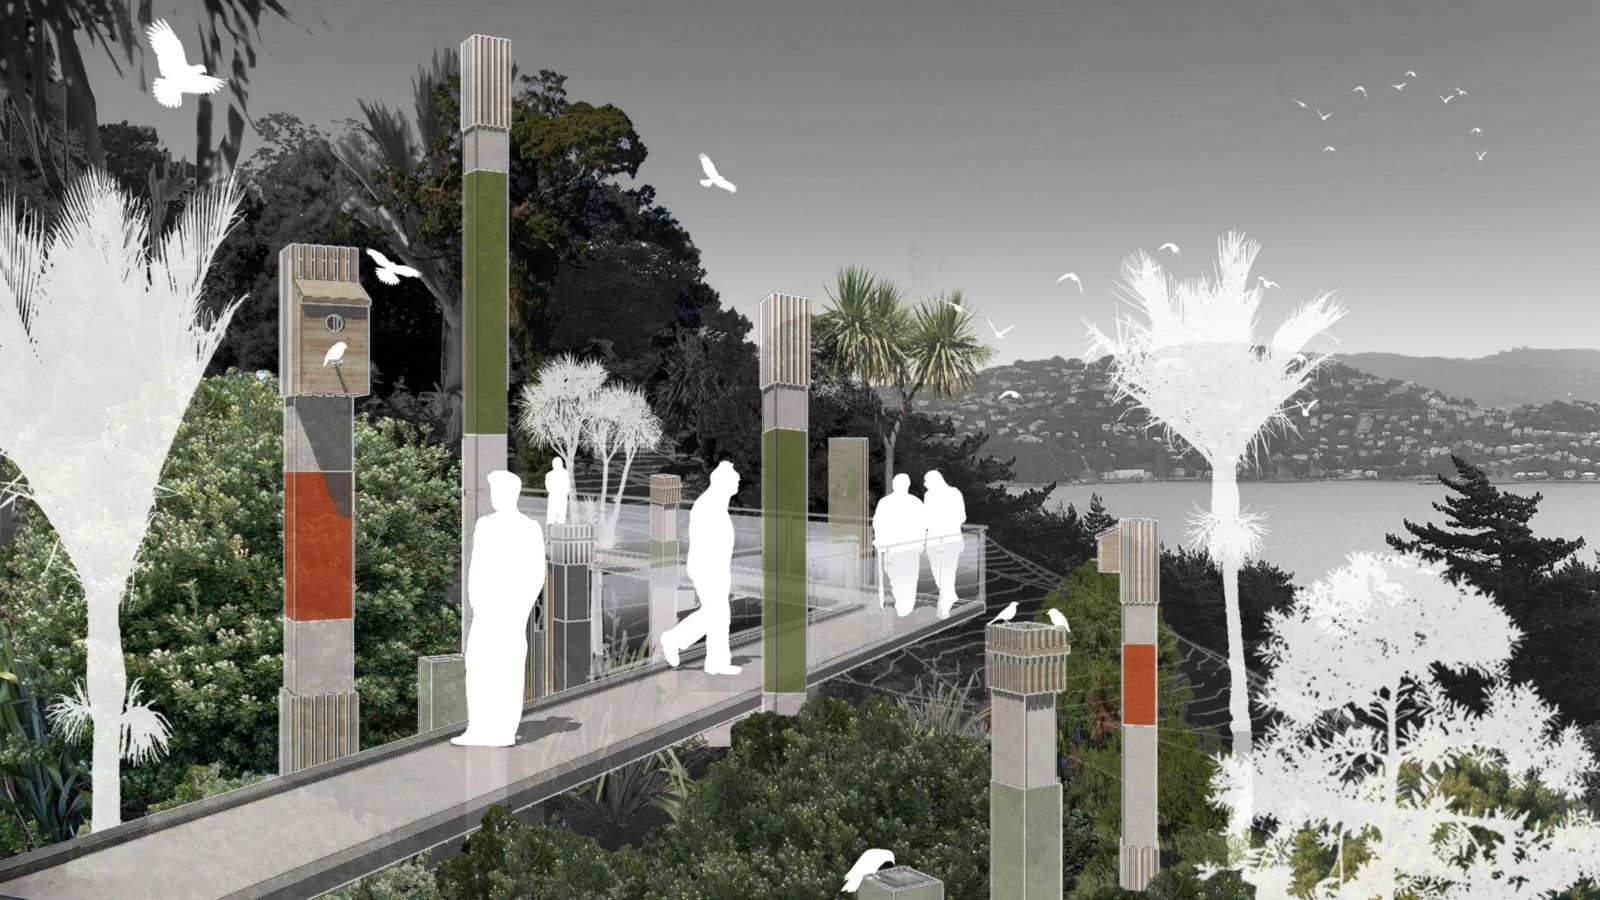 Design view of walking path in native bush, with white silhouettes of humans and birds.